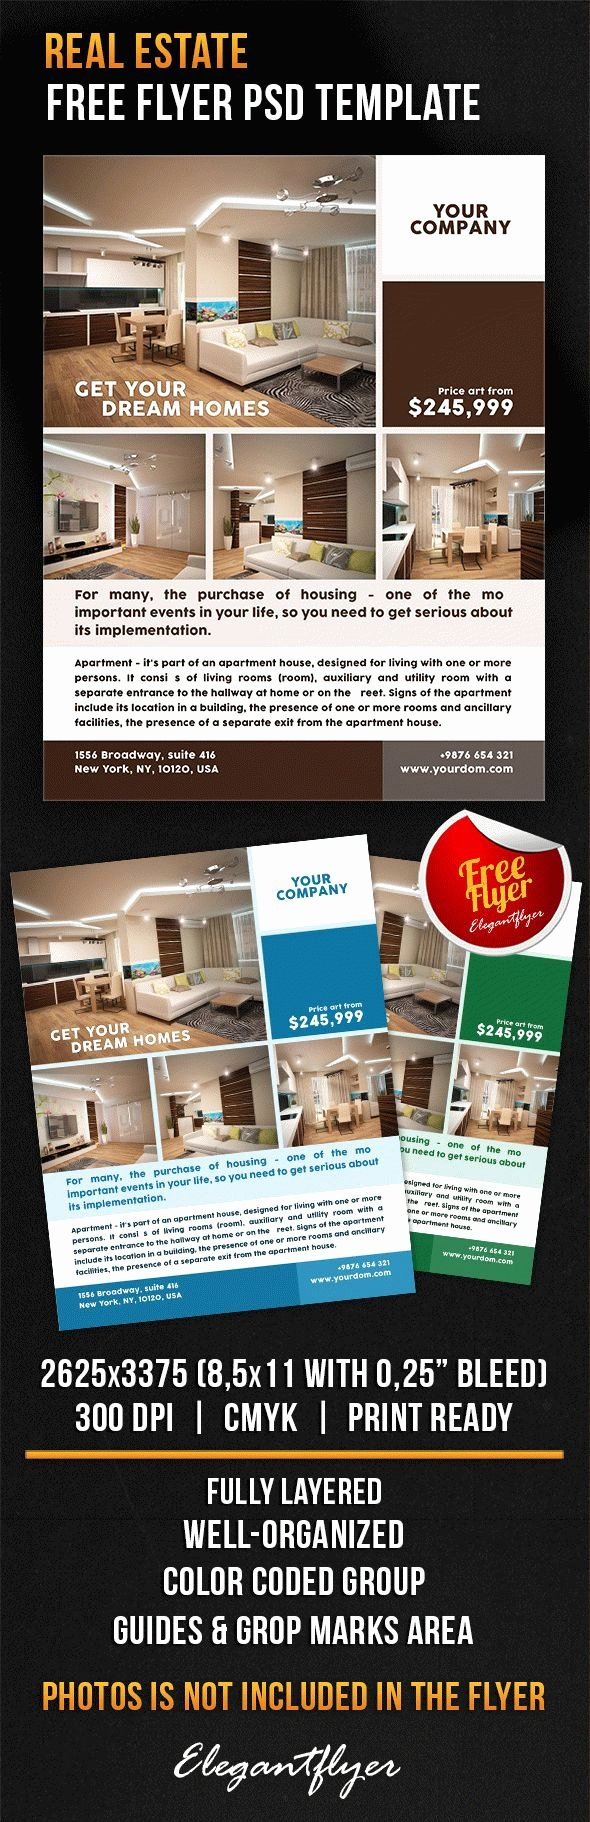 Real Estate Flyer Template Psd Best Of Real Estate – Free Flyer Psd Template – by Elegantflyer